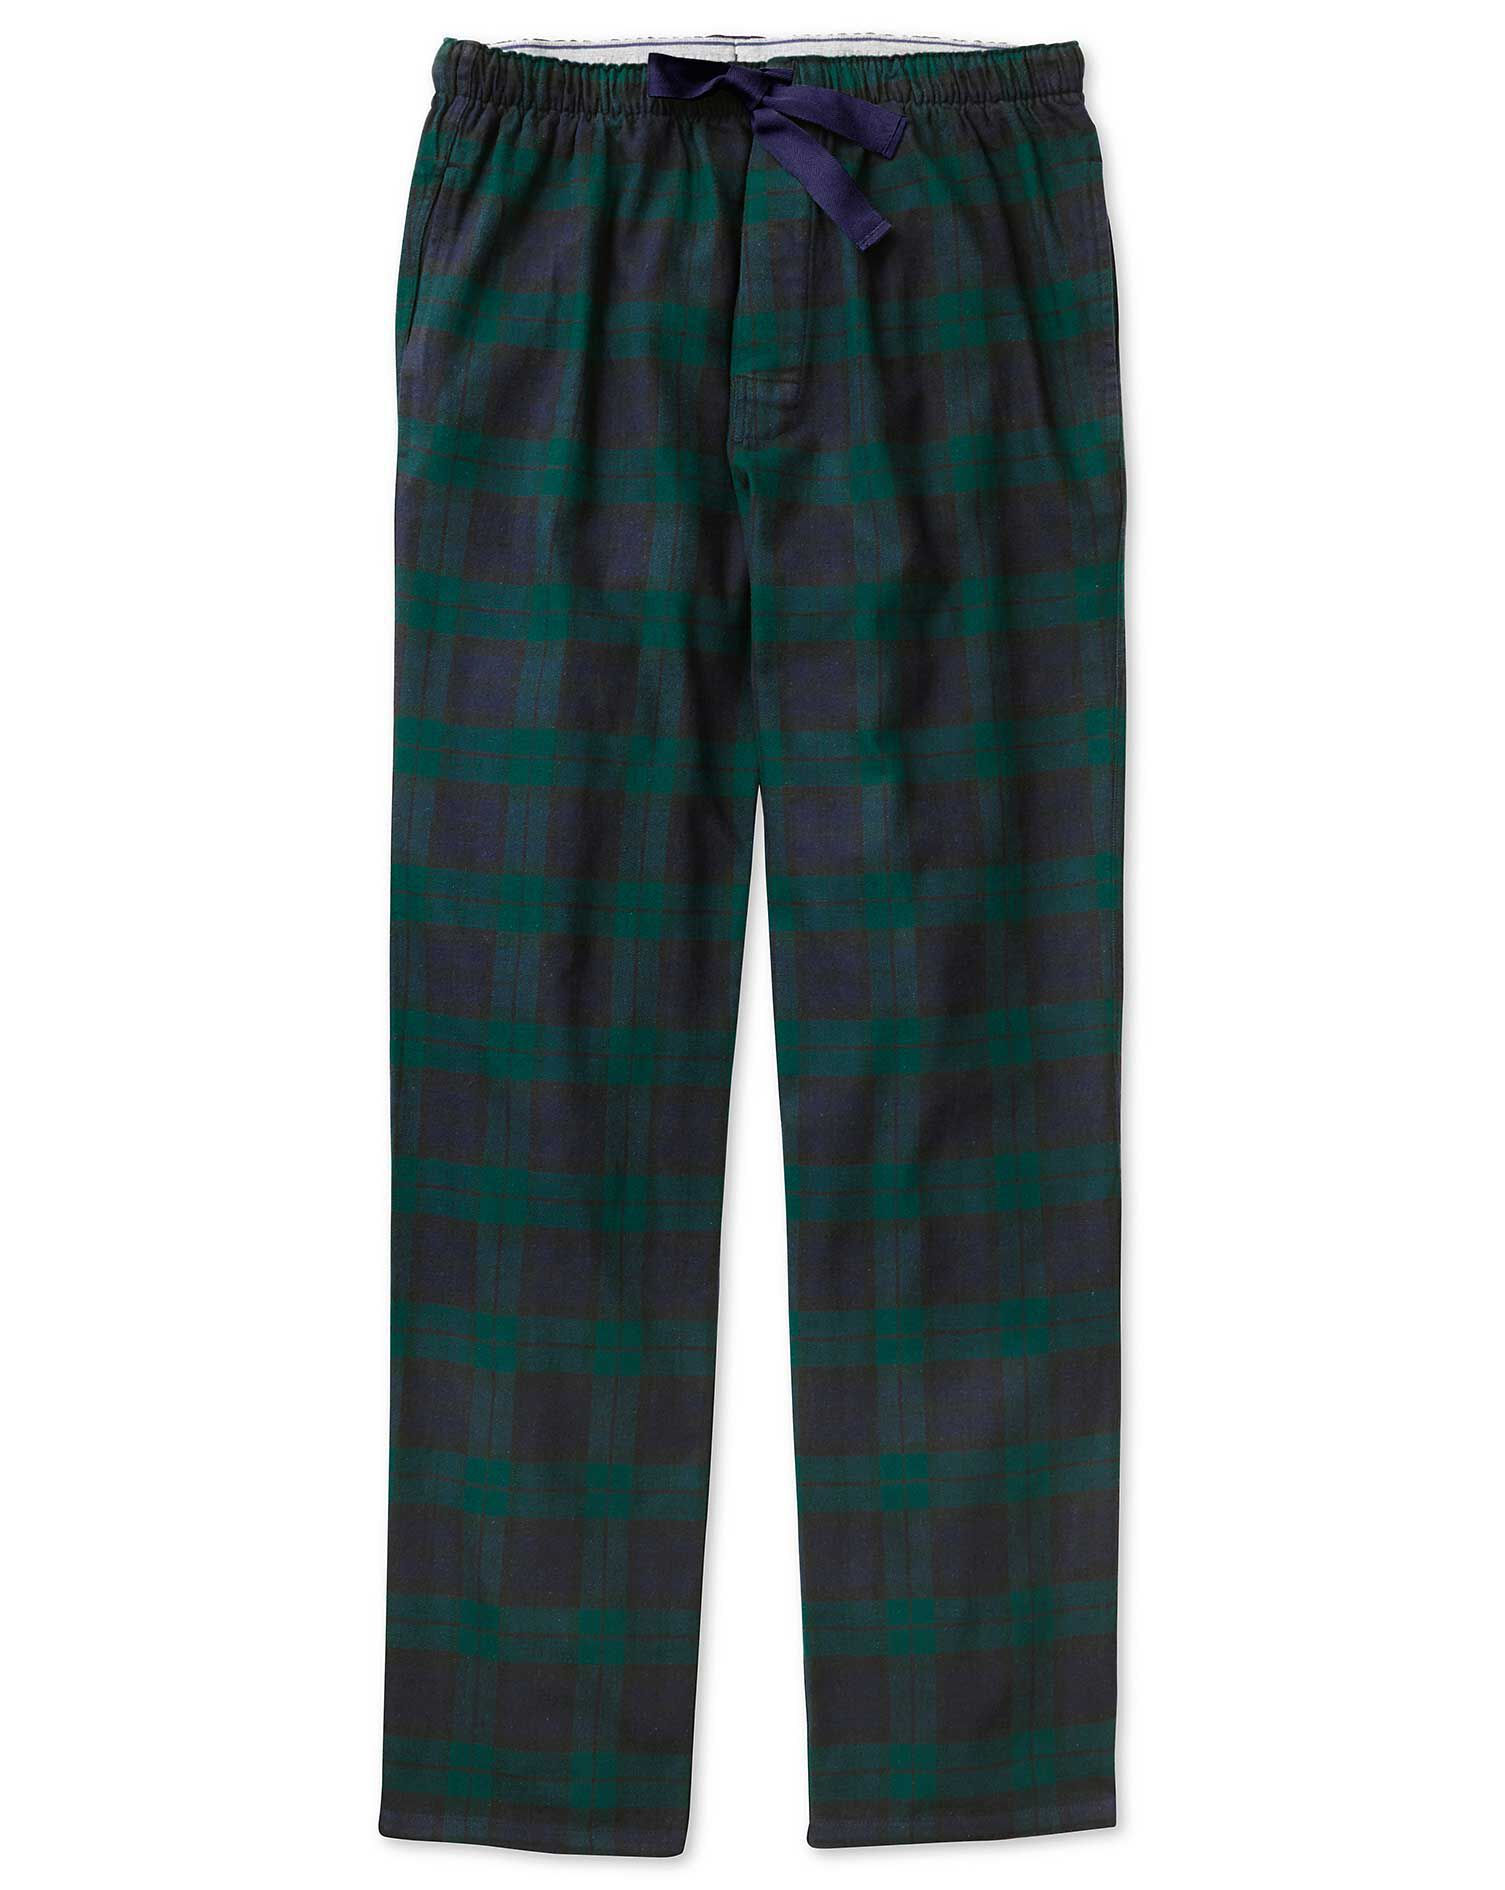 Navy and Green Check Brushed Cotton Pyjama Trousers Size Small by Charles Tyrwhitt